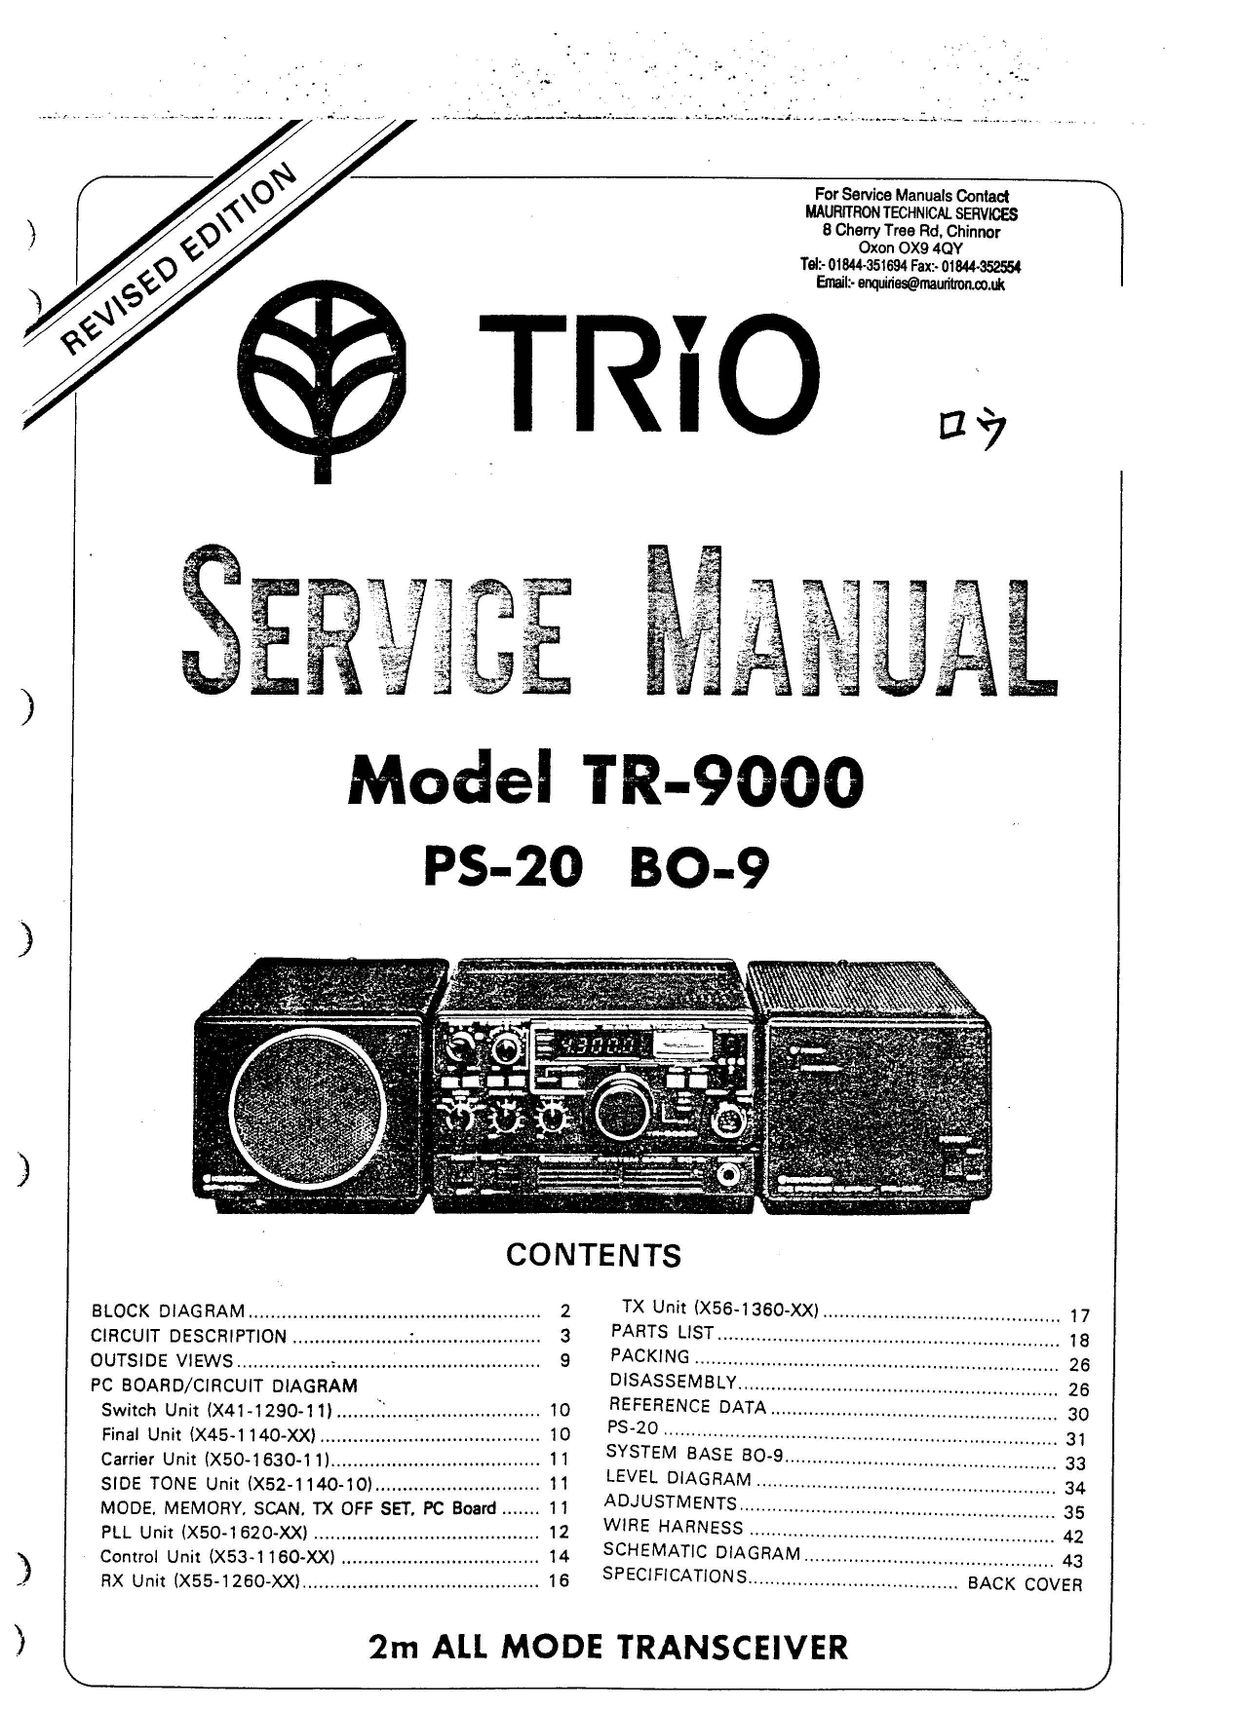 Kenwood Trio TR9000 PS20 BO9 Service Manual